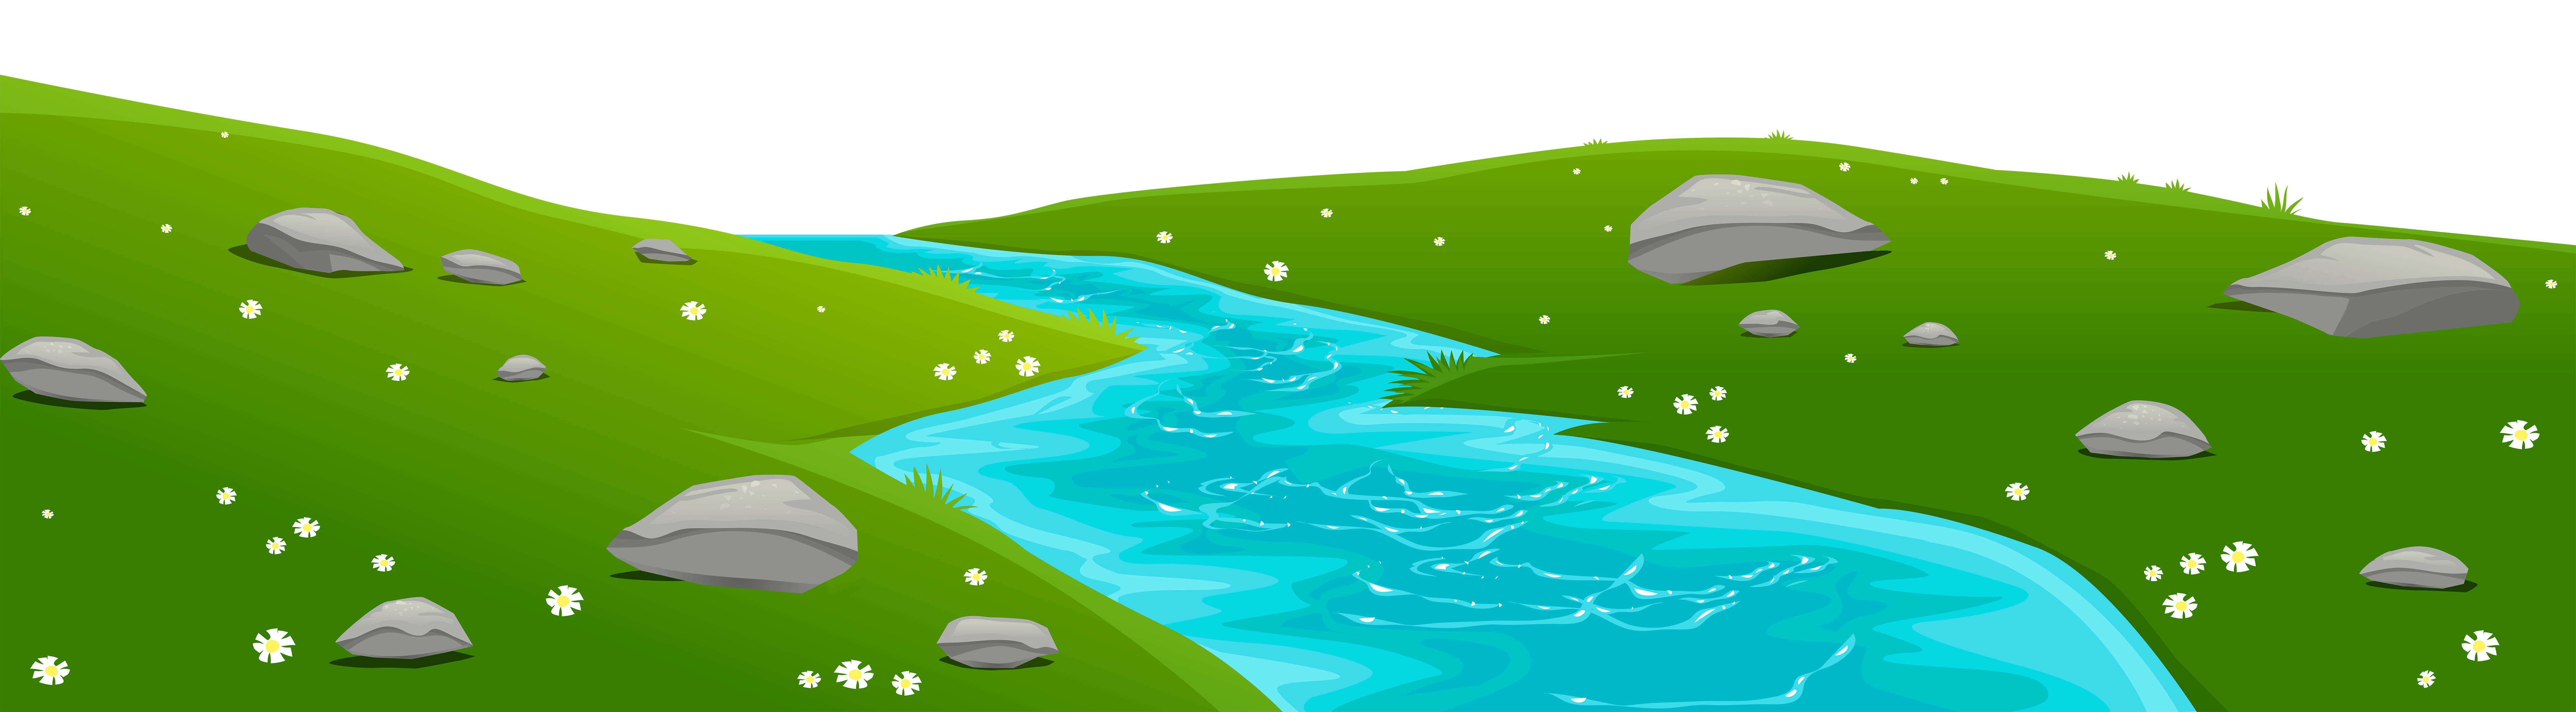 River clipart clipart download 28+ Collection of River Water Clipart | High quality, free cliparts ... clipart download